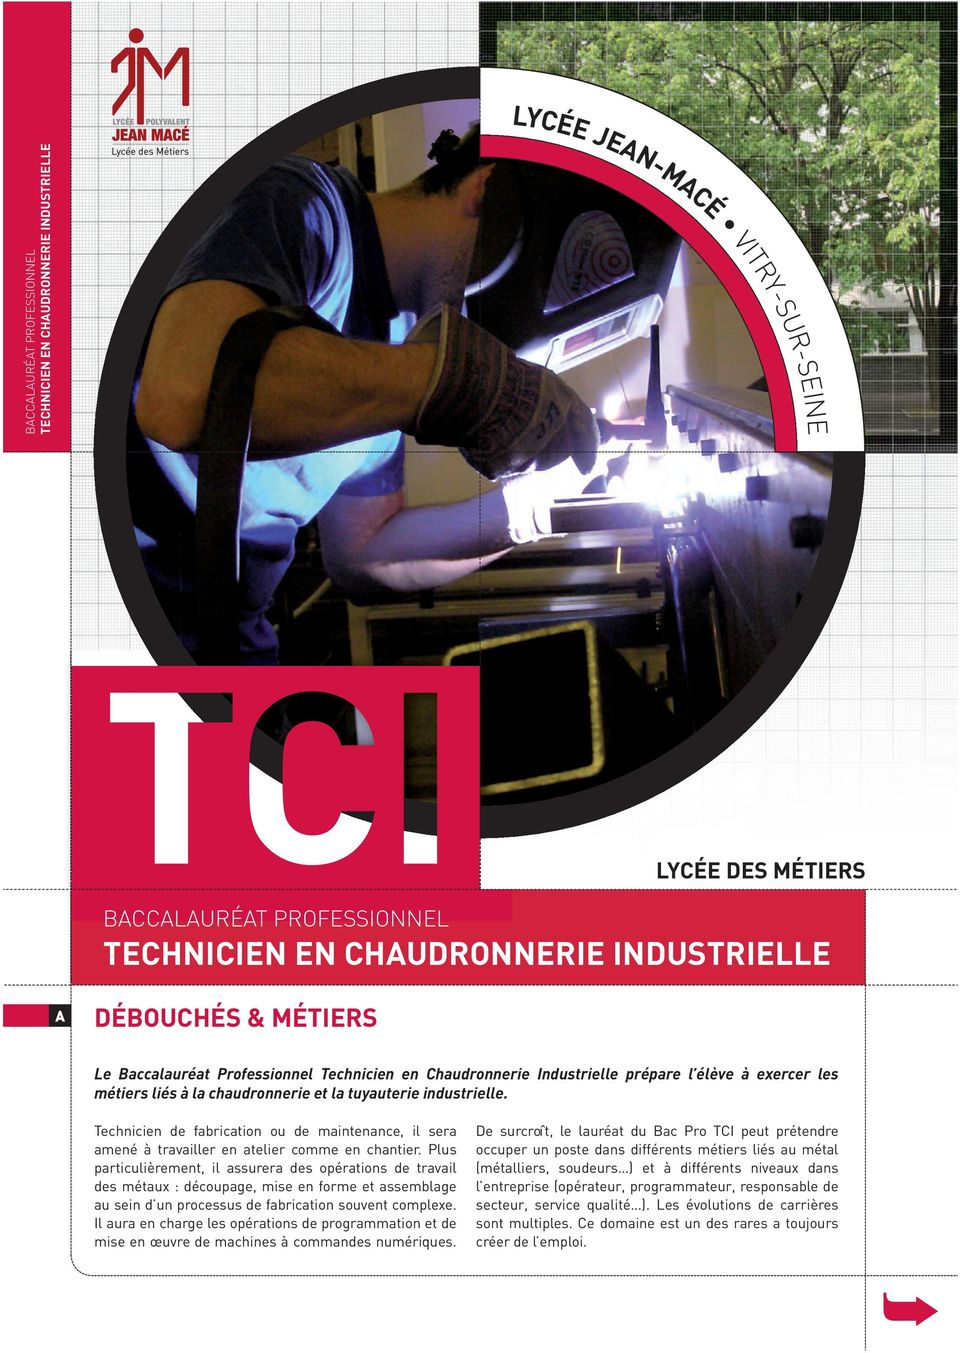 Technicien de fabrication ou de maintenance, il sera amené à travailler en atelier comme en chantier.